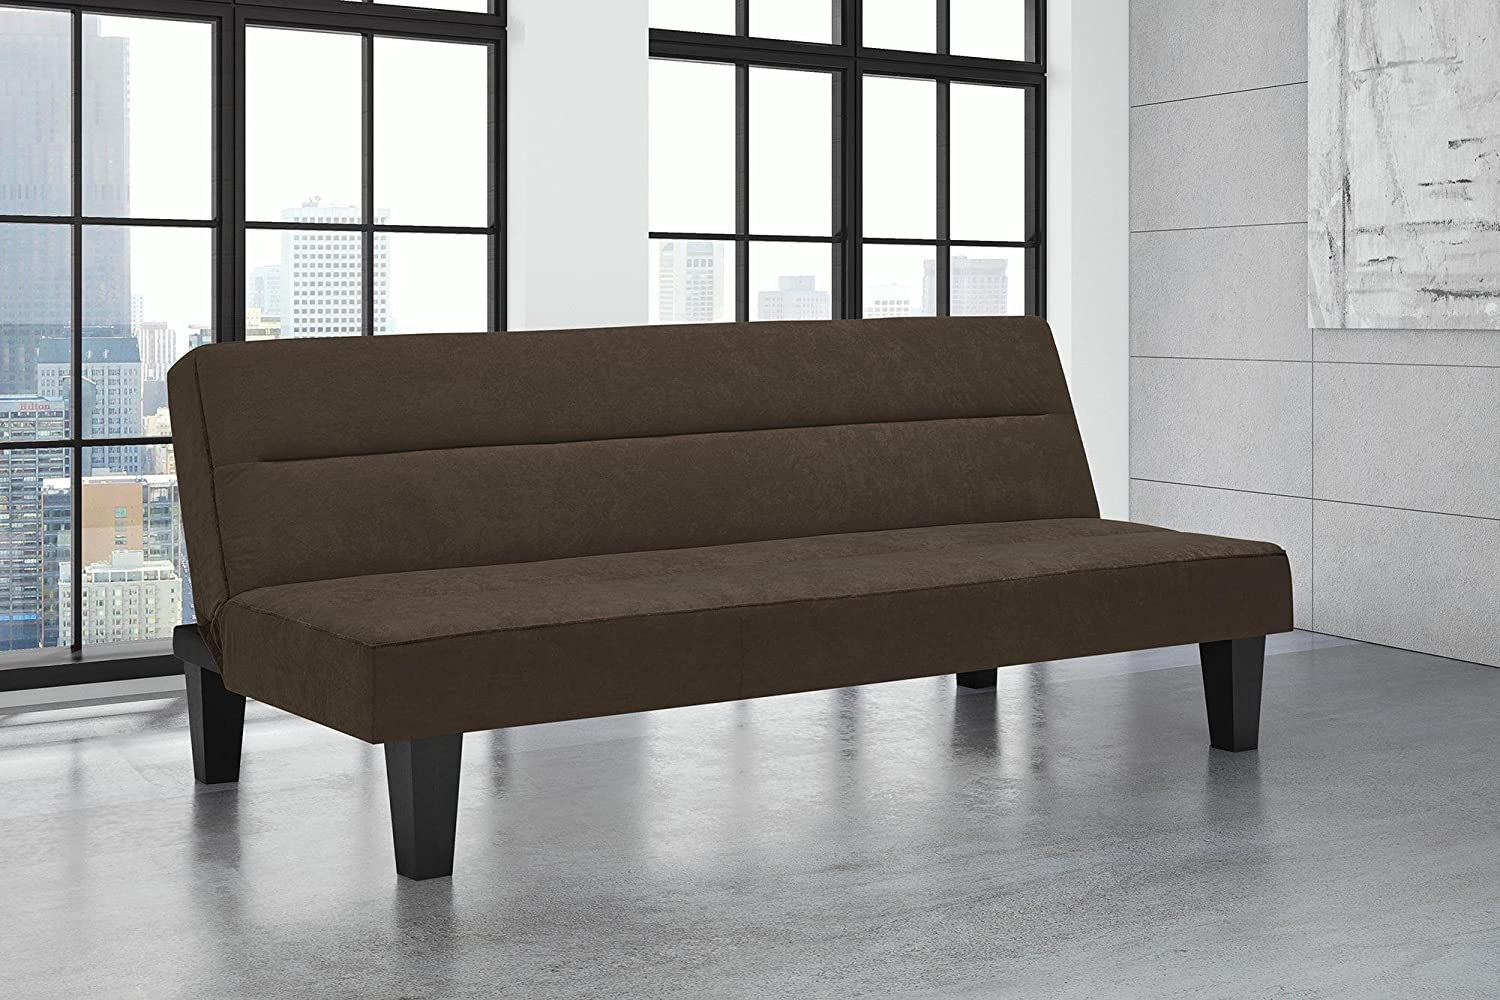 - Amazon.com: Modern Upholstered Sofa With Microfiber Cover, Quick